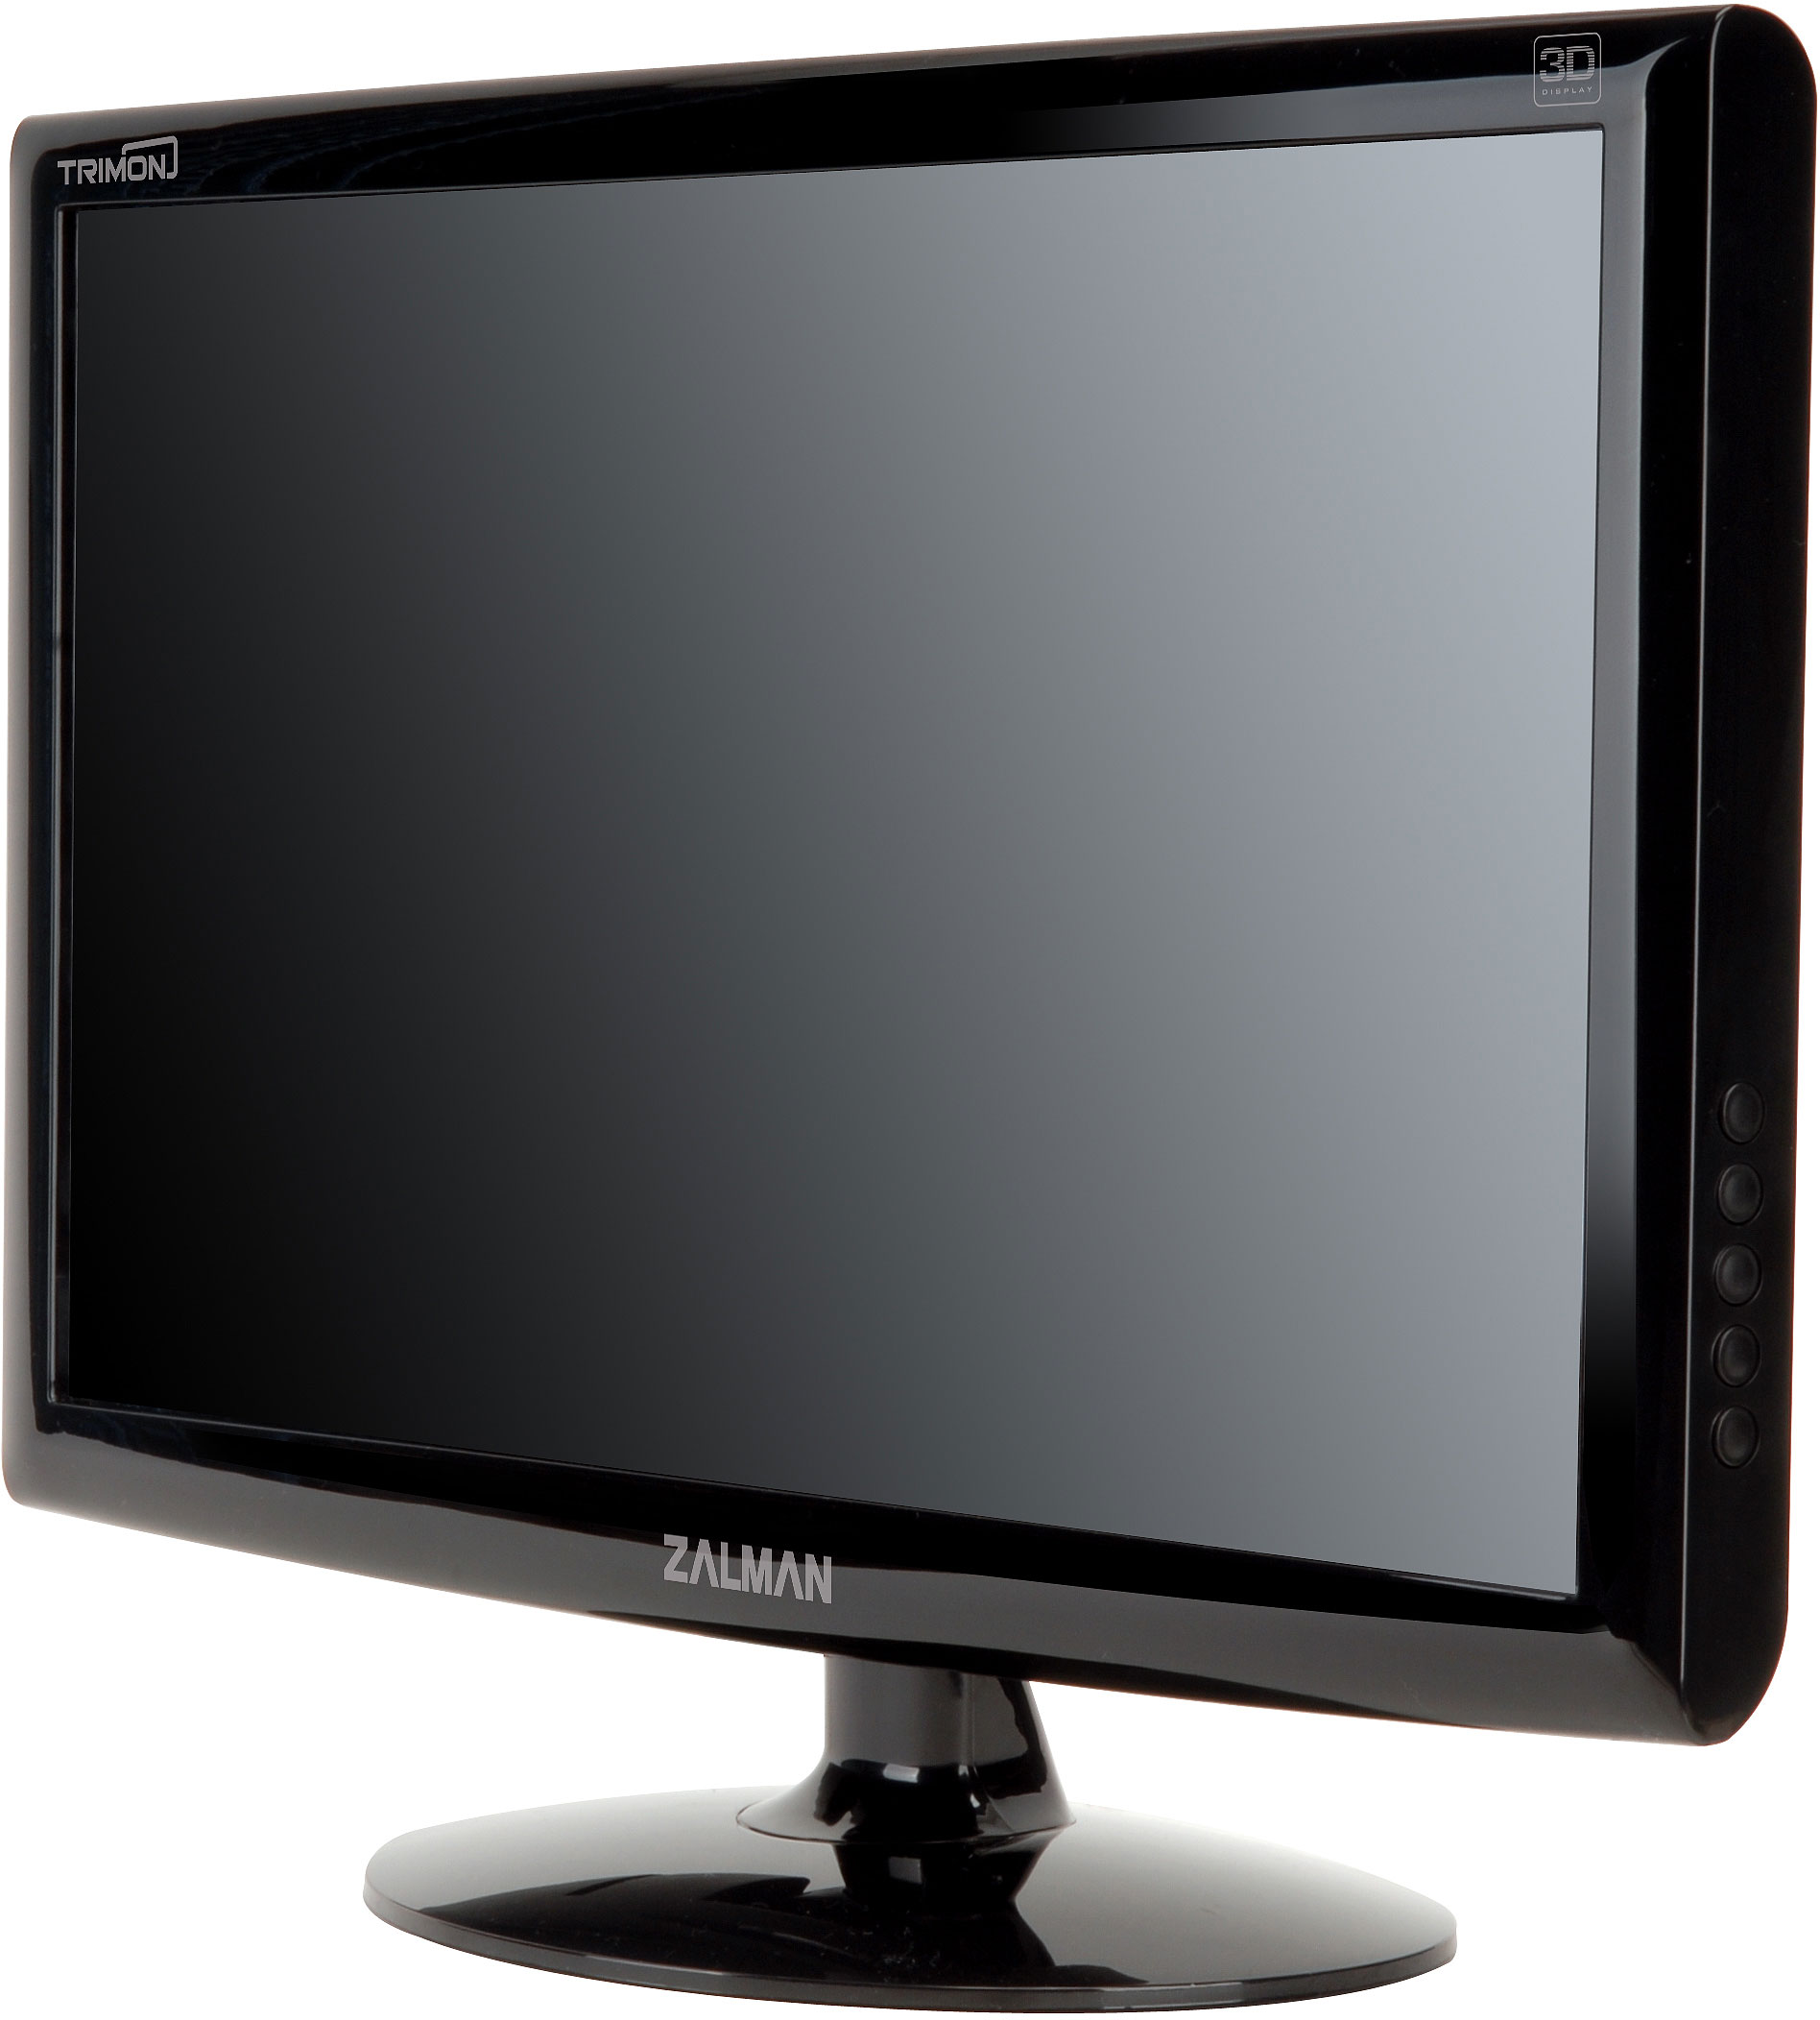 zalman 2d 3d convertible trimon monitors. Black Bedroom Furniture Sets. Home Design Ideas